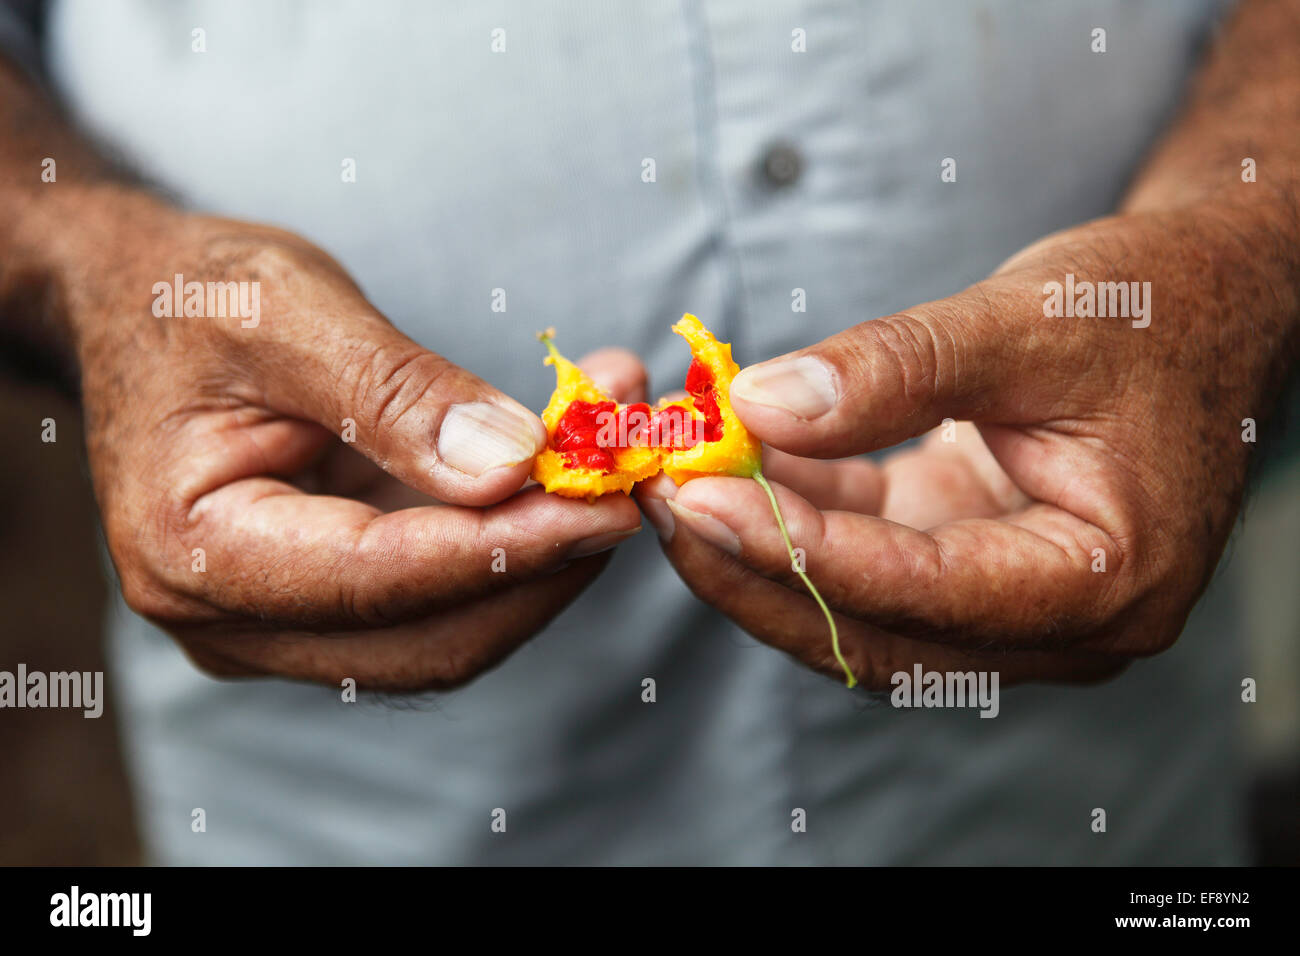 Man's hands holding the fruit of a Bitter Melon (Momordica charantia), Ometepe, Rivas Province, Nicaragua - Stock Image